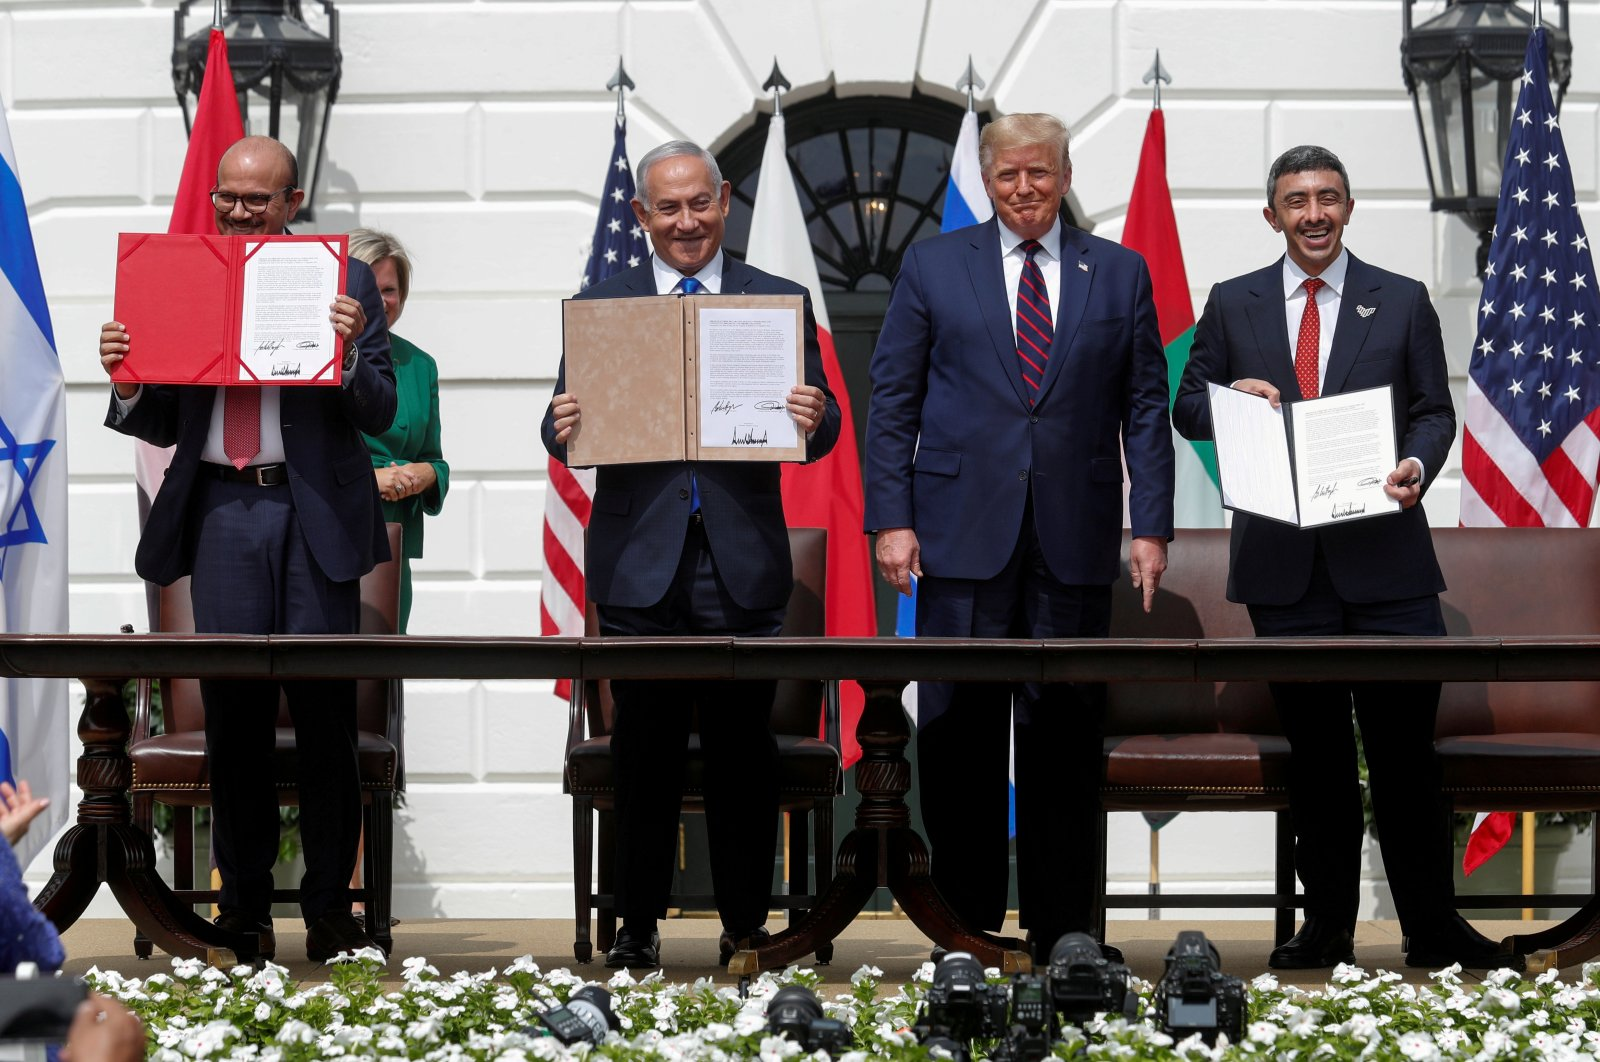 (From L to R) Bahrain's Foreign Minister Abdullatif al-Zayani, Israel's Prime Minister Benjamin Netanyahu, U.S. President Donald Trump and United Arab Emirates (UAE) Foreign Minister Abdullah bin Zayed in the signing ceremony of the Abraham Accords, on the South Lawn of the White House in Washington, D.C., Sept. 15, 2020. (Reuters Photo)